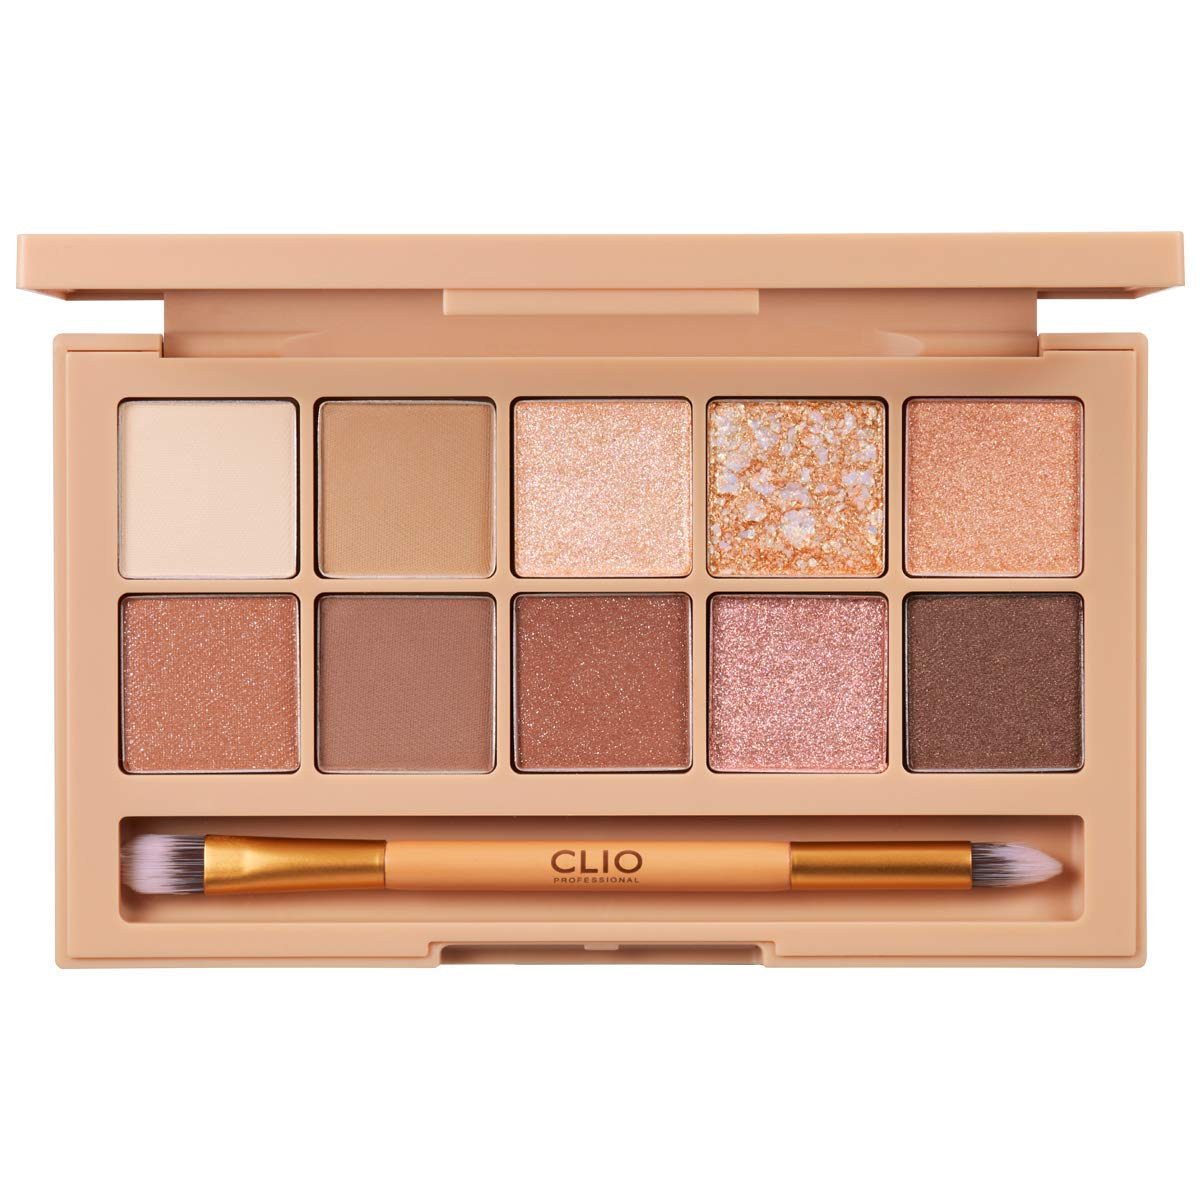 CLIO Pro Eye Shadow Palette | Matte, Shimmer, Glitter, Pearls, Highly Pigments, Long-Wearing | Brown Choux (#02)